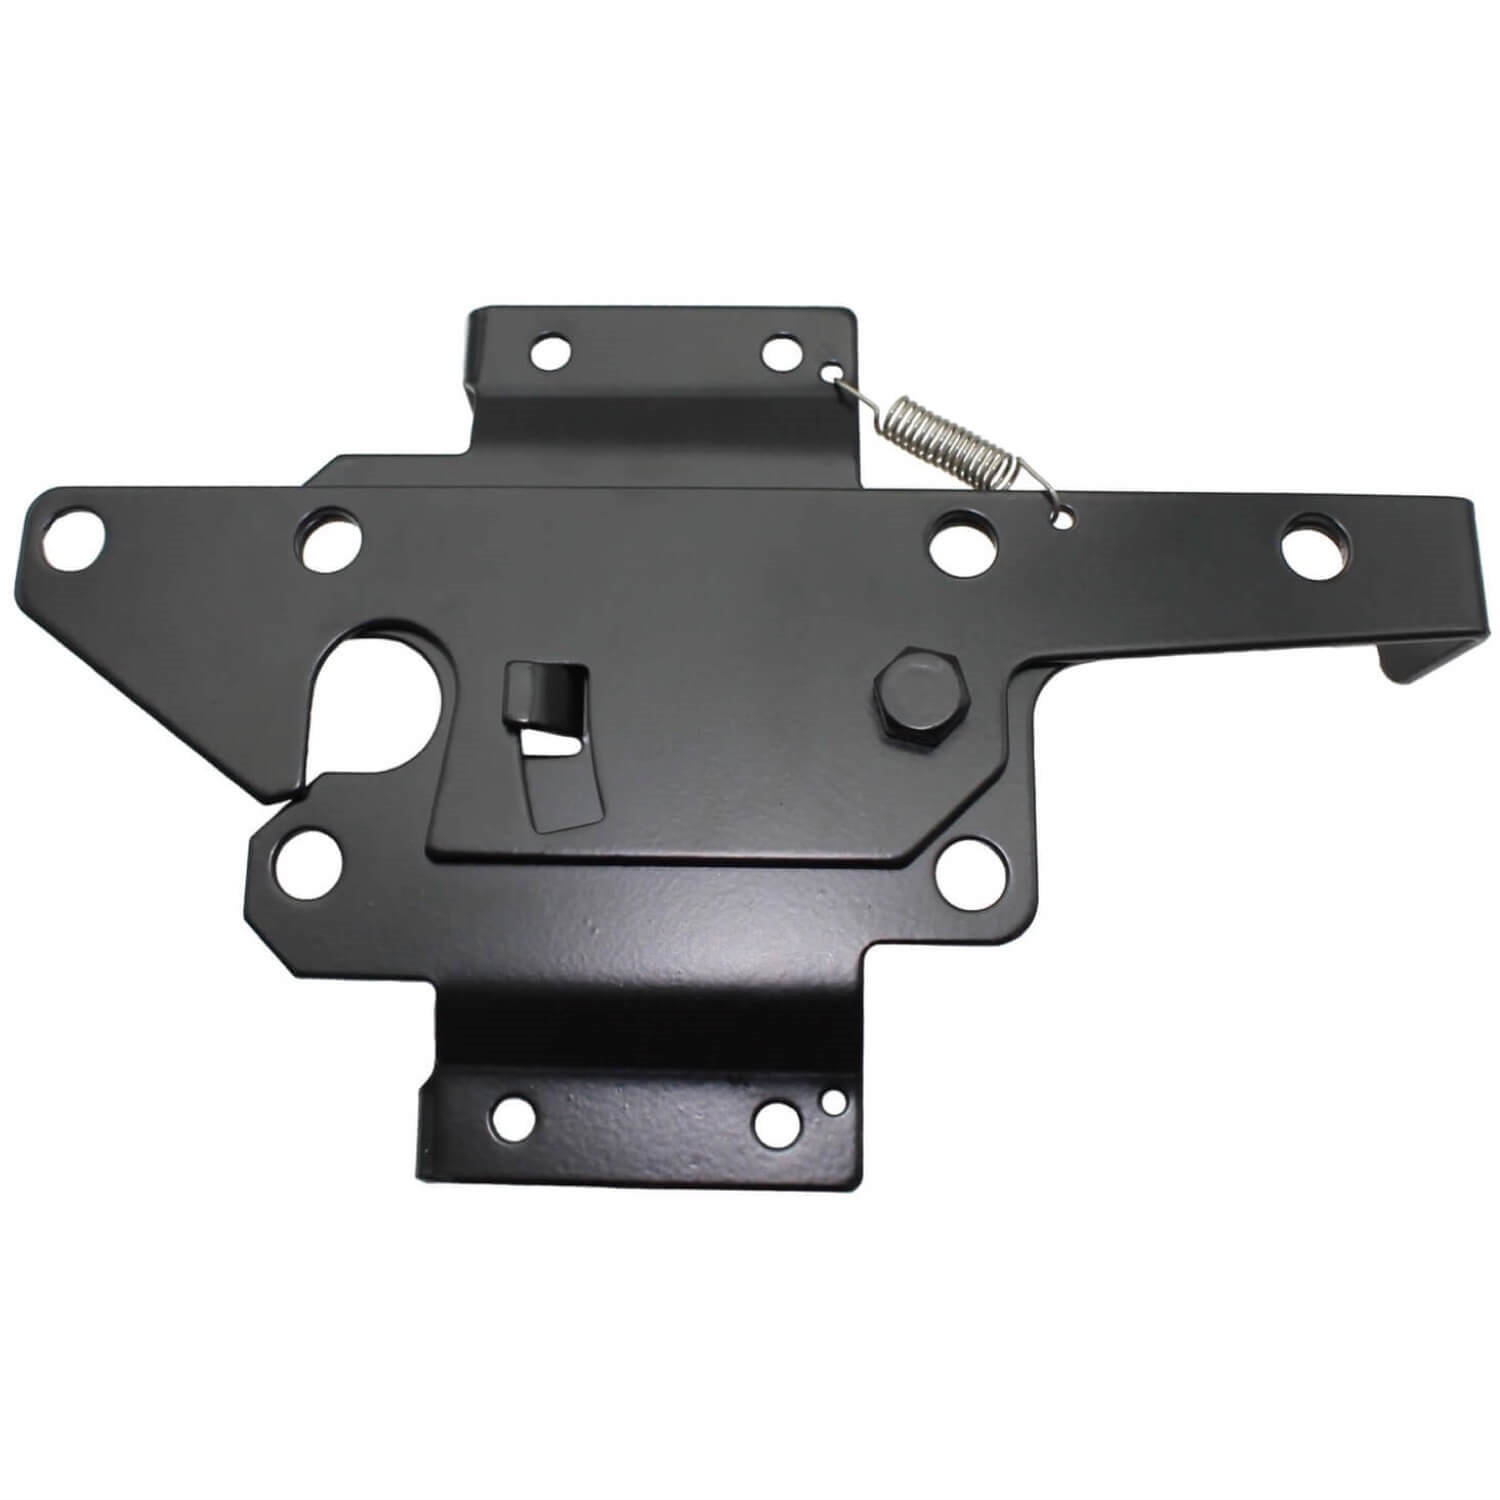 Vinyl Fence Gate Latch Vinyl Gate Latch Black Vinyl